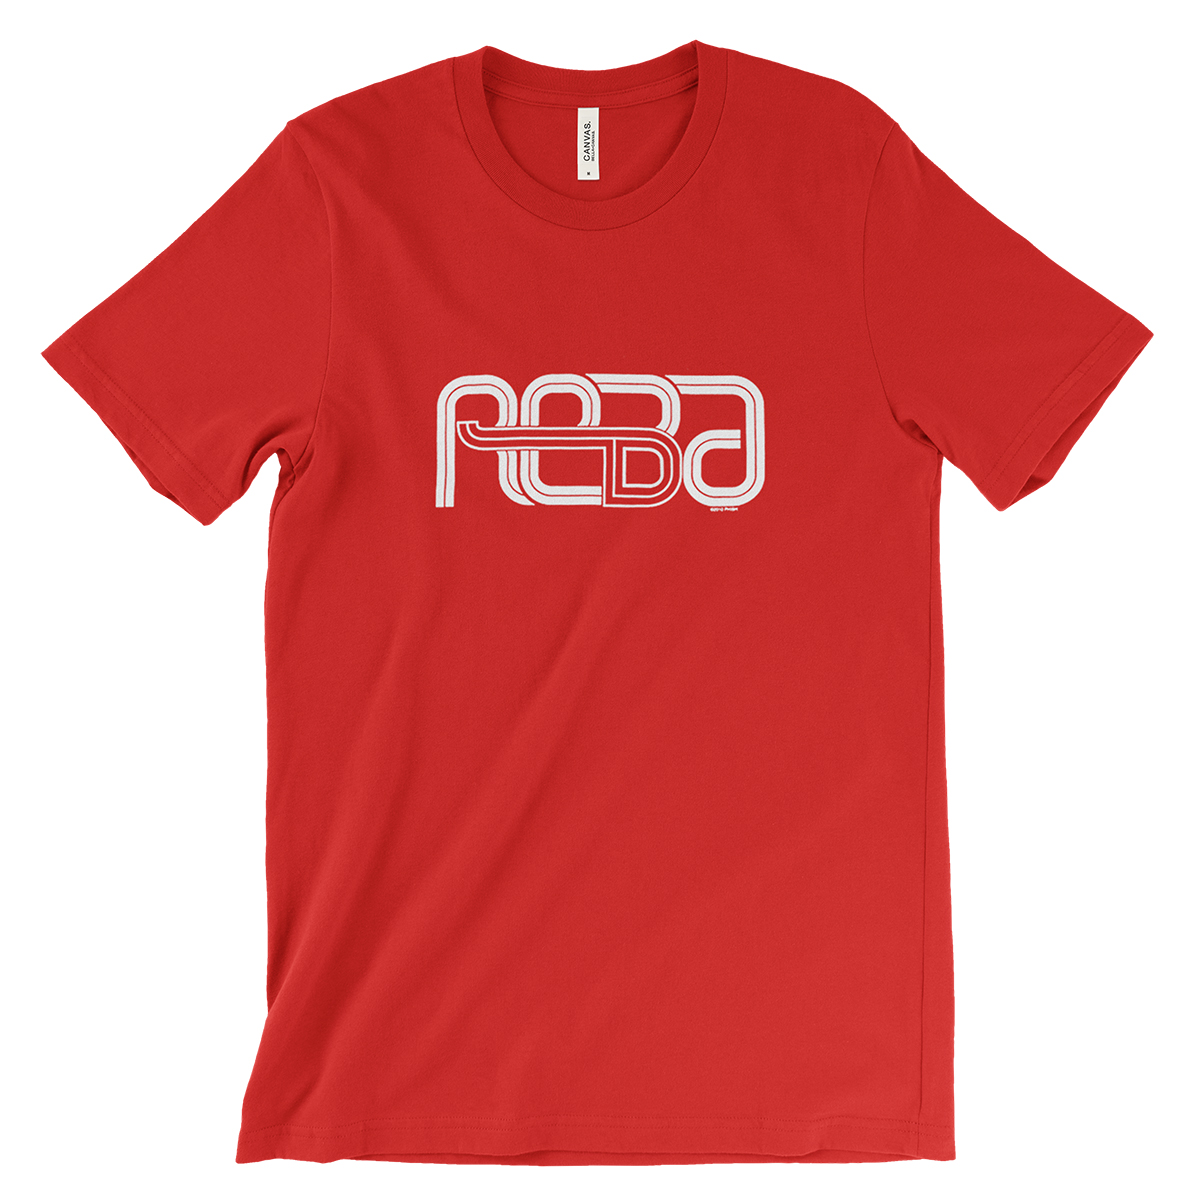 Reba on Red T